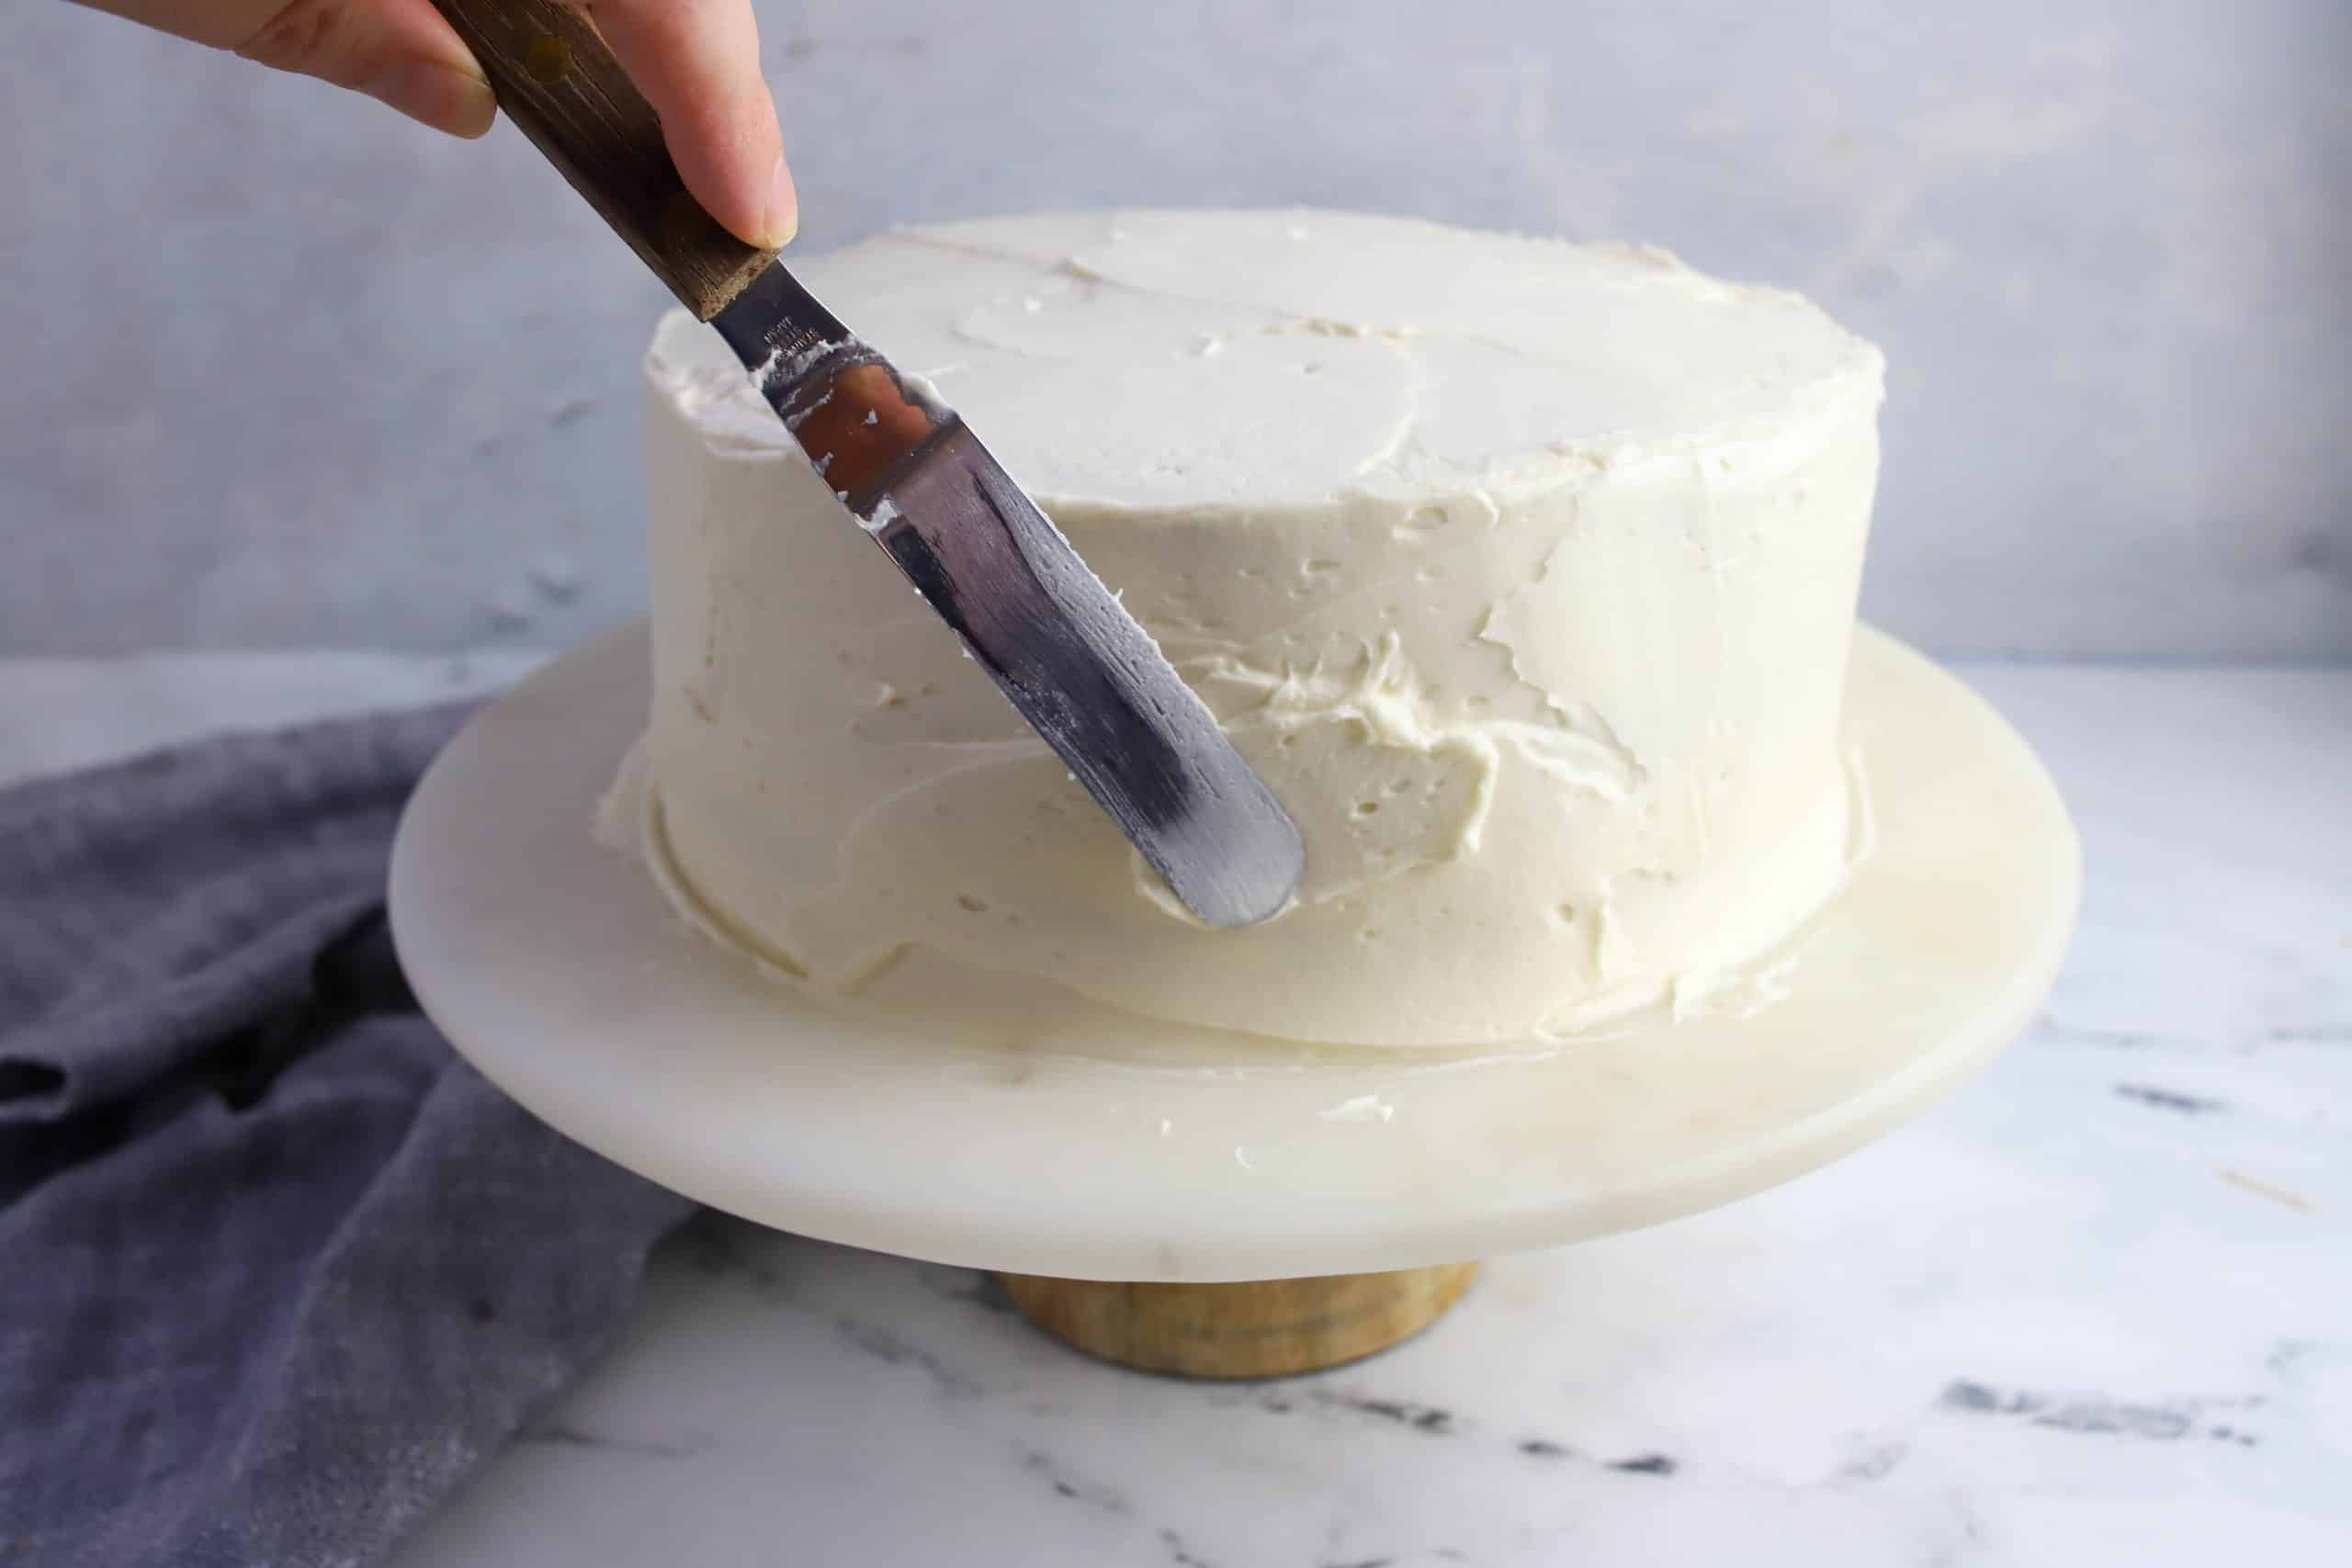 small spatula filling in gaps in frosted cake